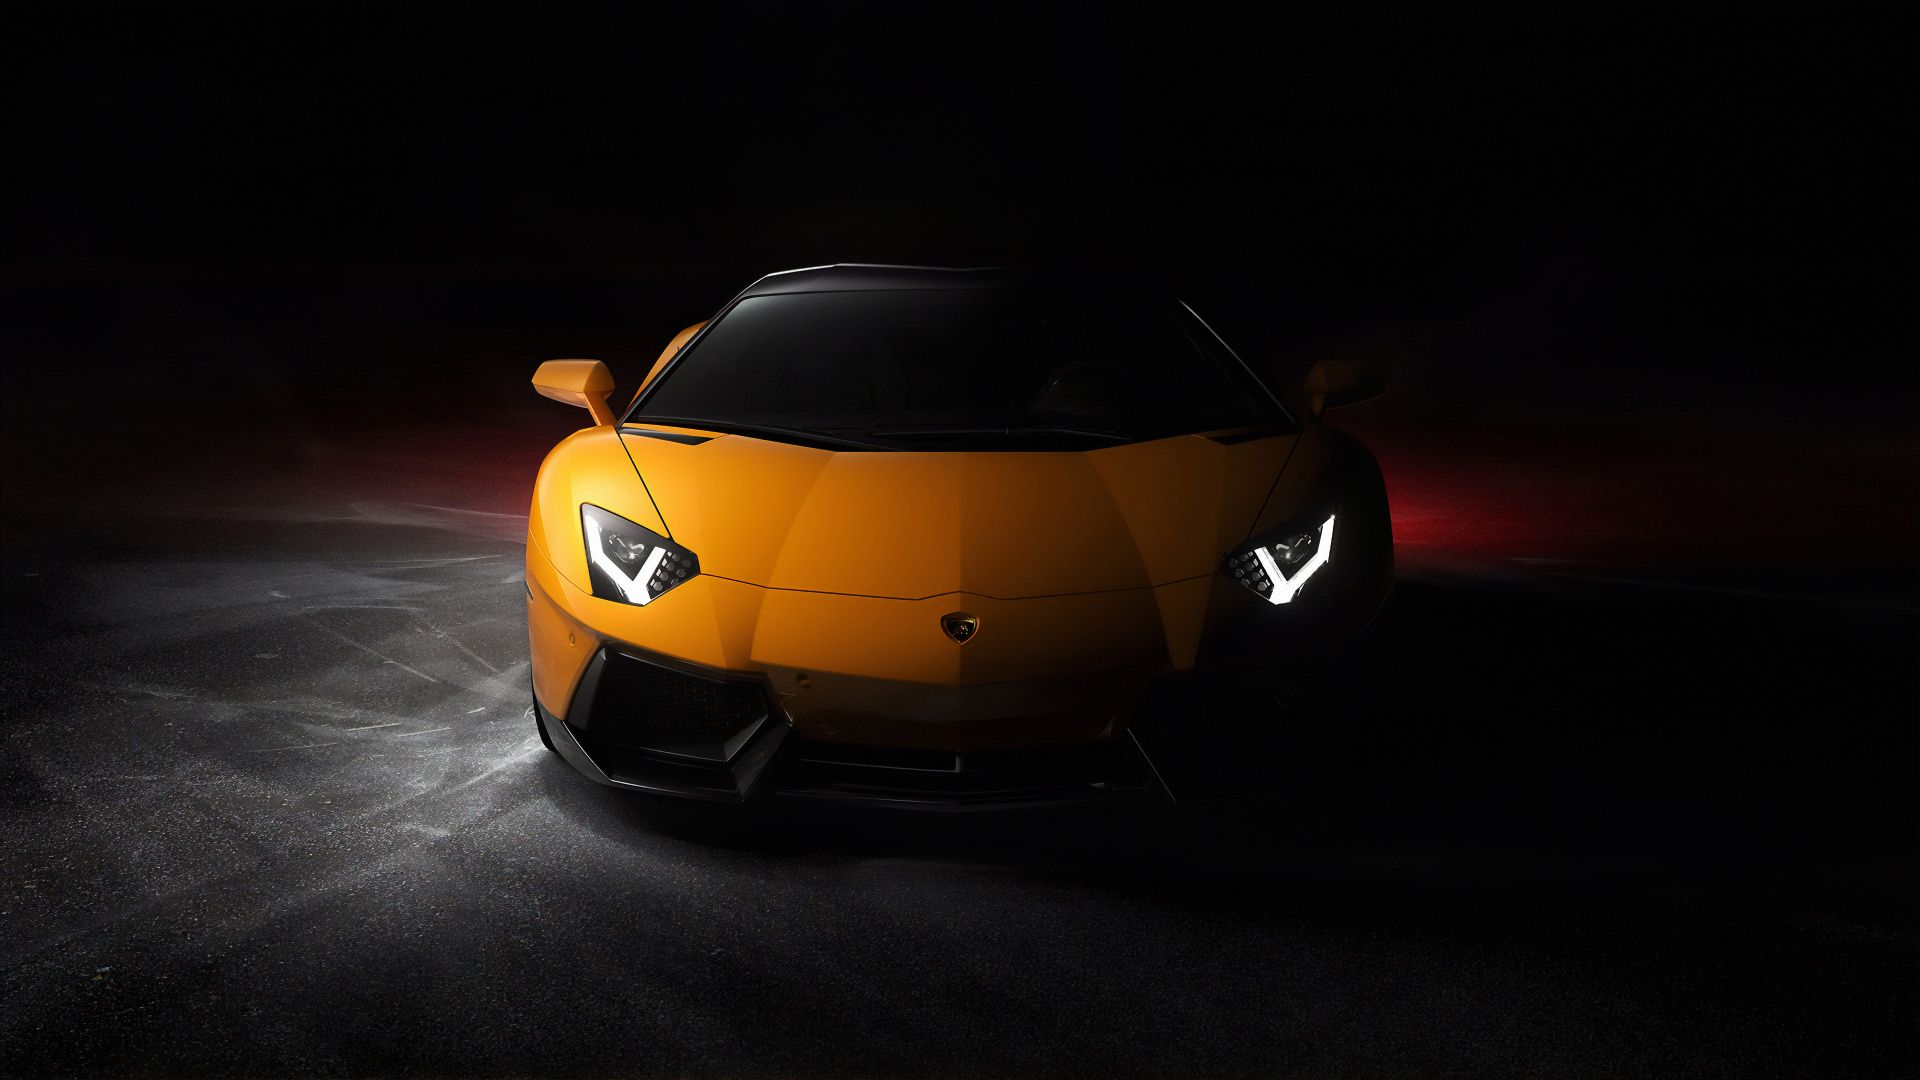 1920x1080 Yellow Lamborghini Aventador, front wallpaper